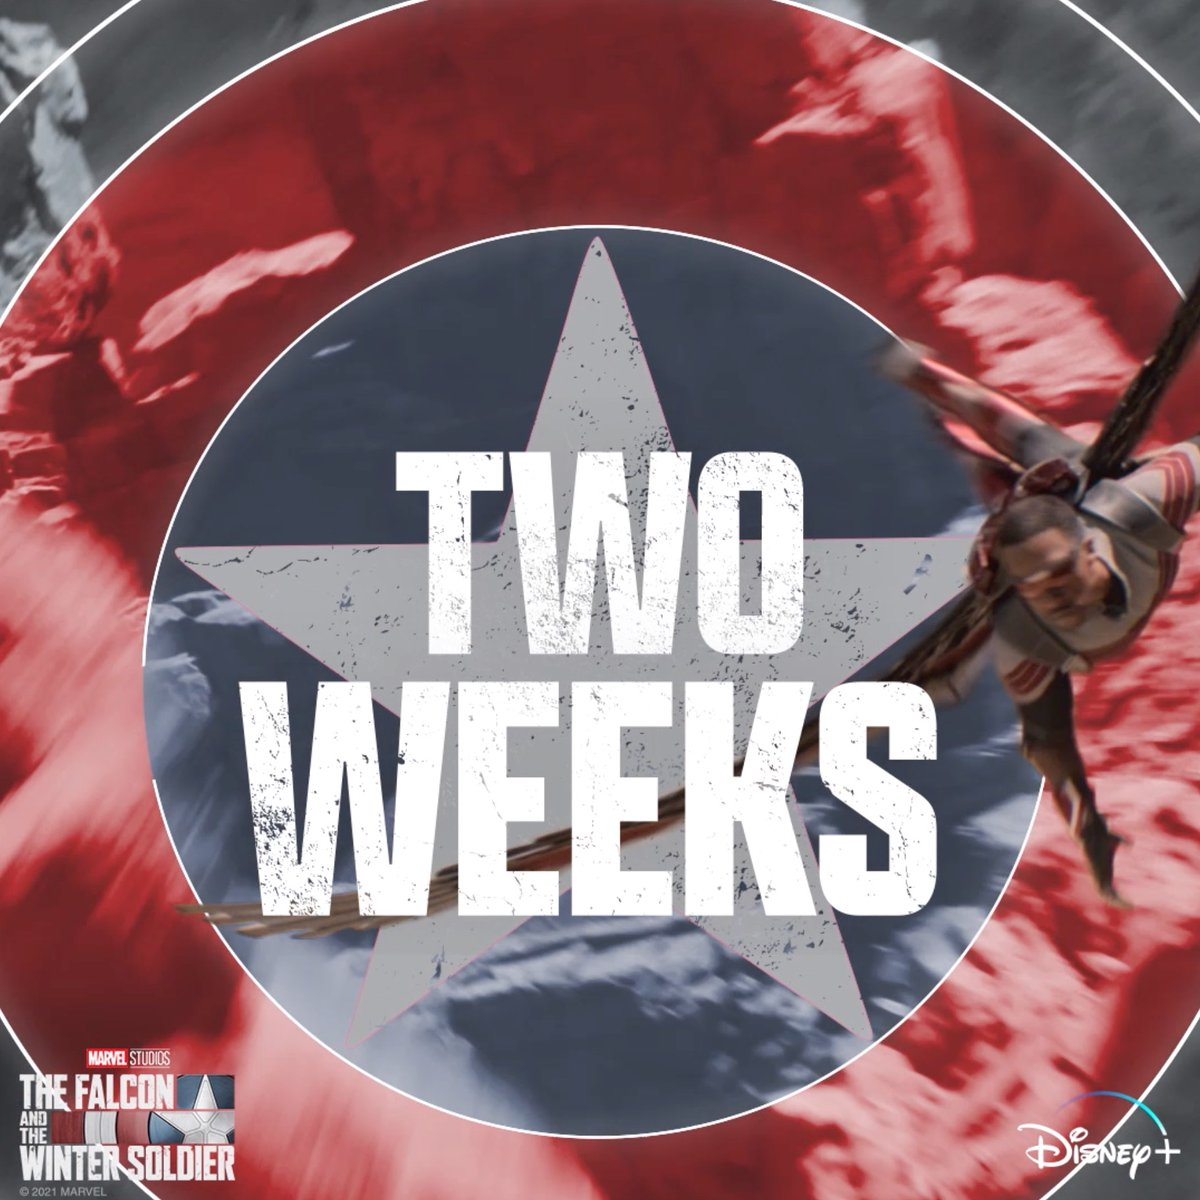 Two weeks until two heroes return. Marvel Studios' The Falcon and the Winter Soldier starts streaming March 19 on @DisneyPlus. #FalconAndWinterSoldier